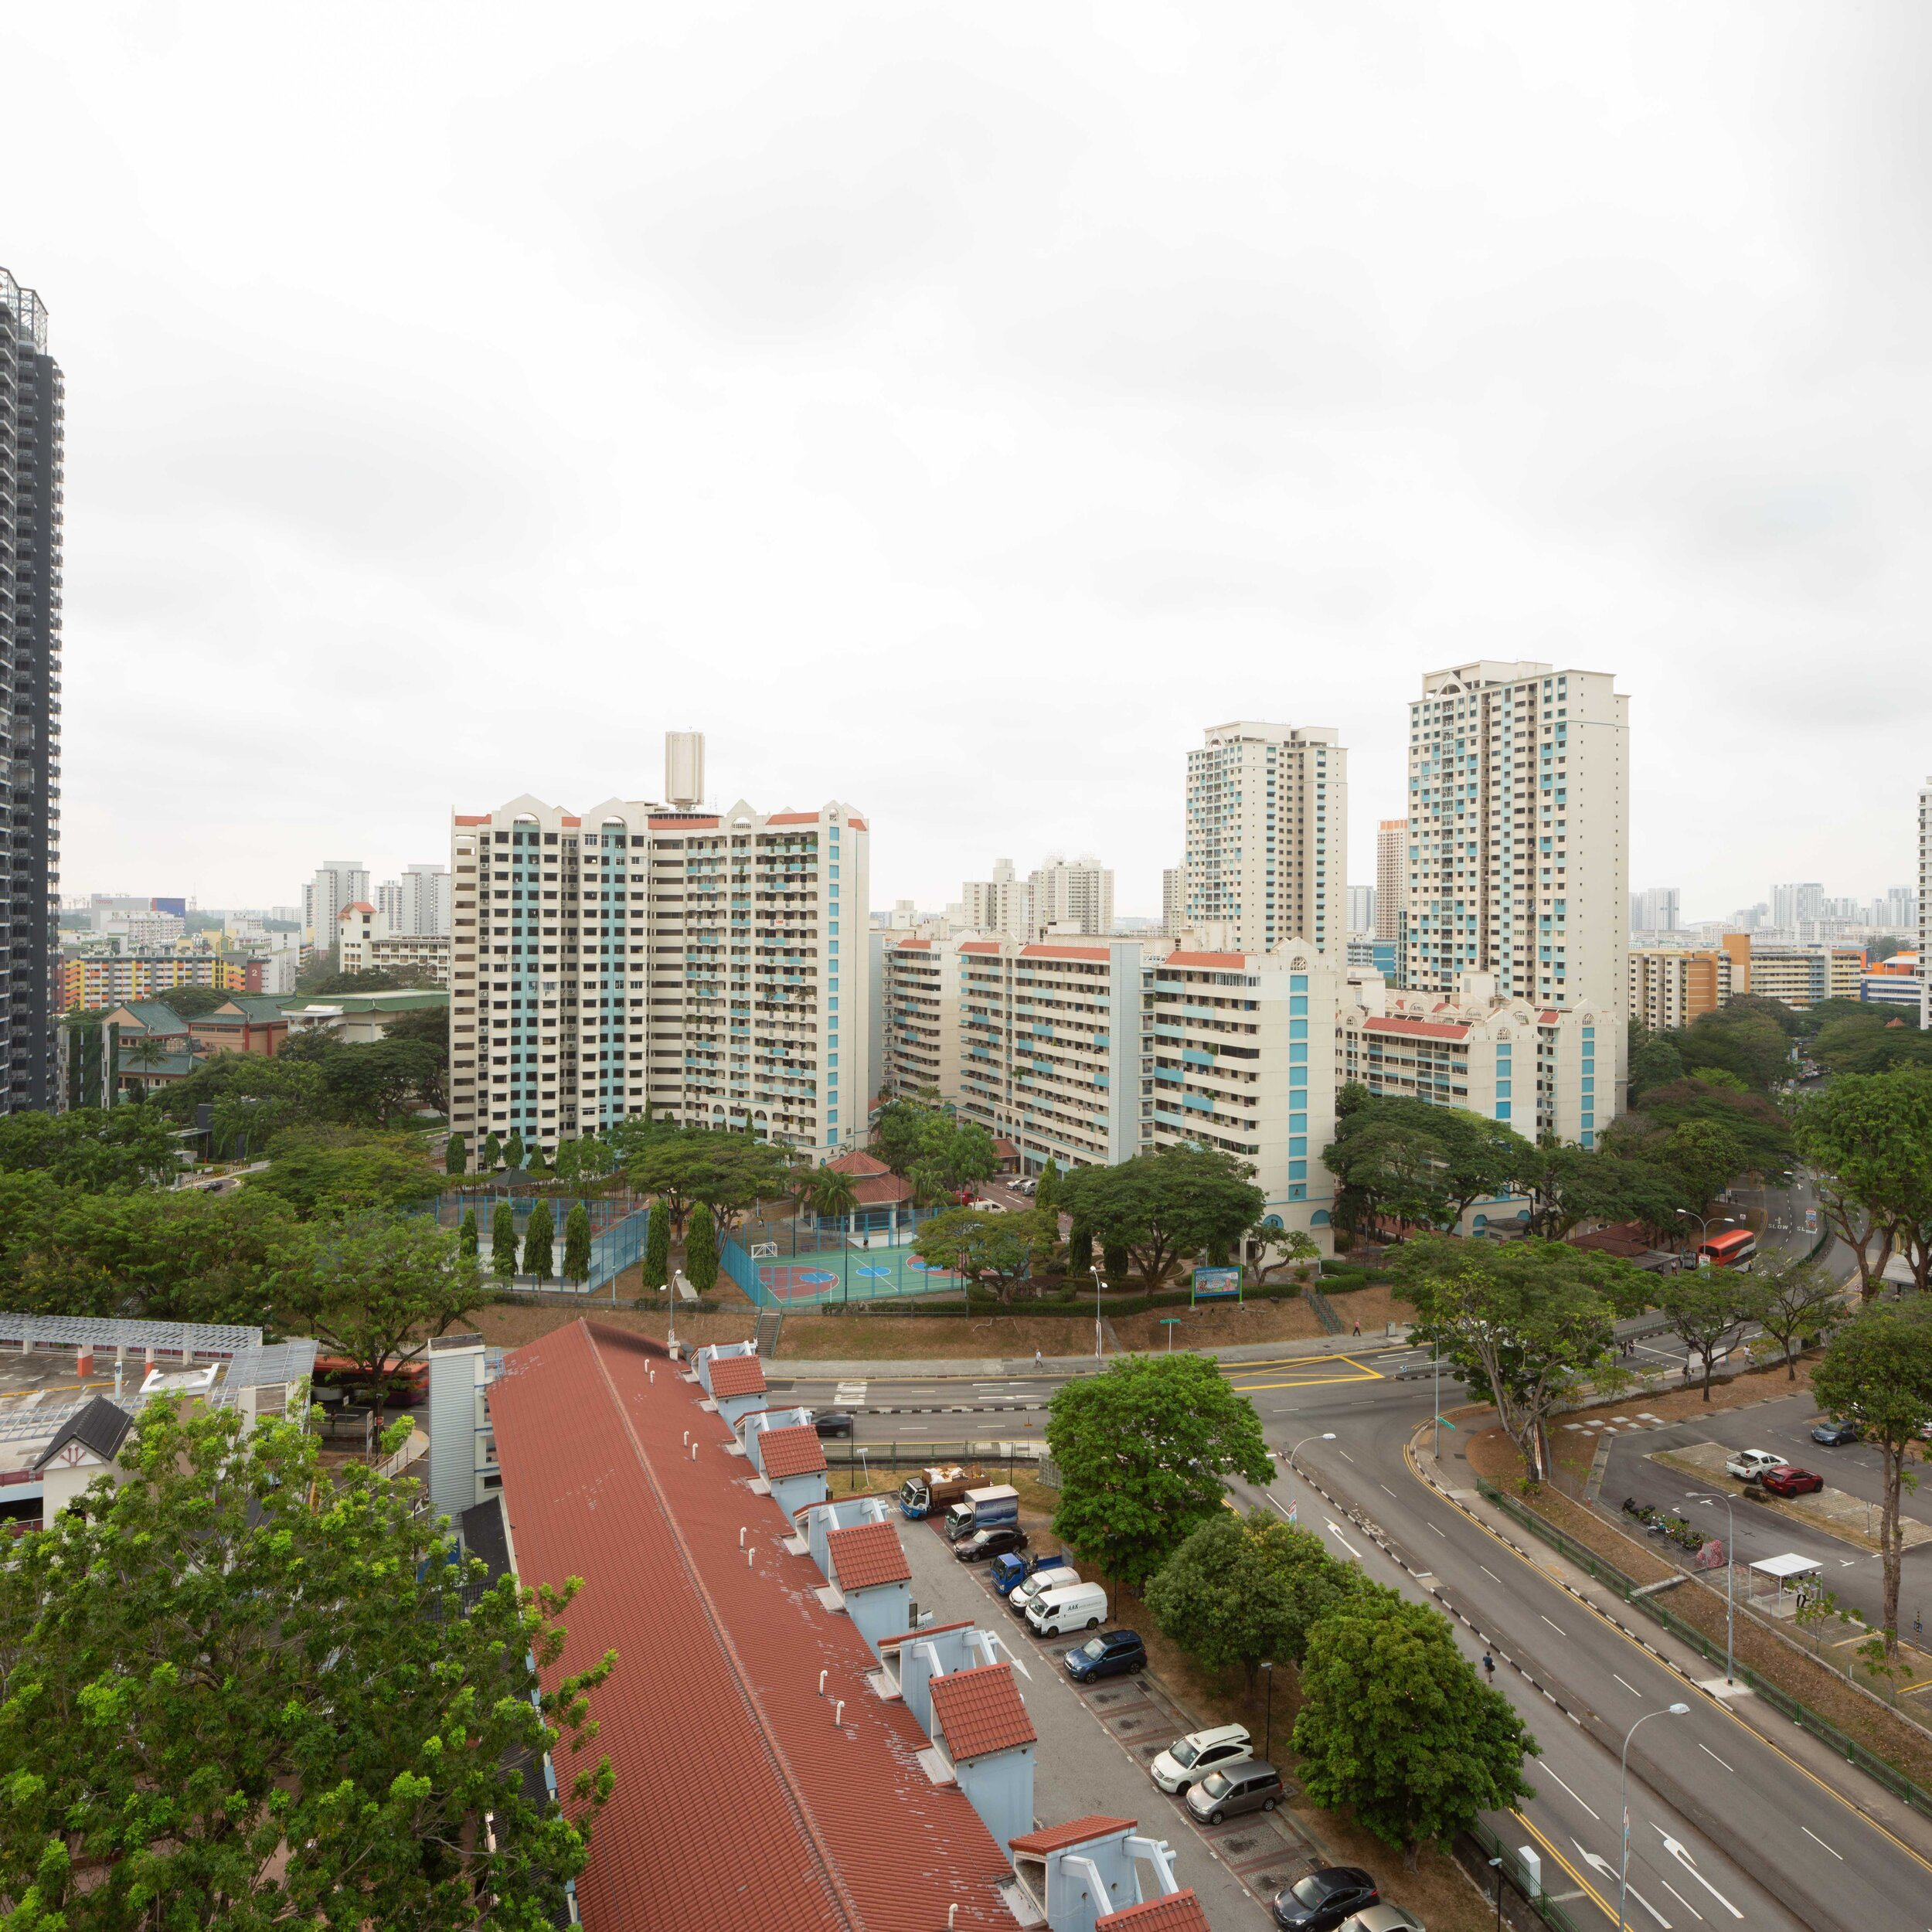 53 Lorong 5 Toa Payoh 190920 116, image by Andrew Campbell Nelson.jpg